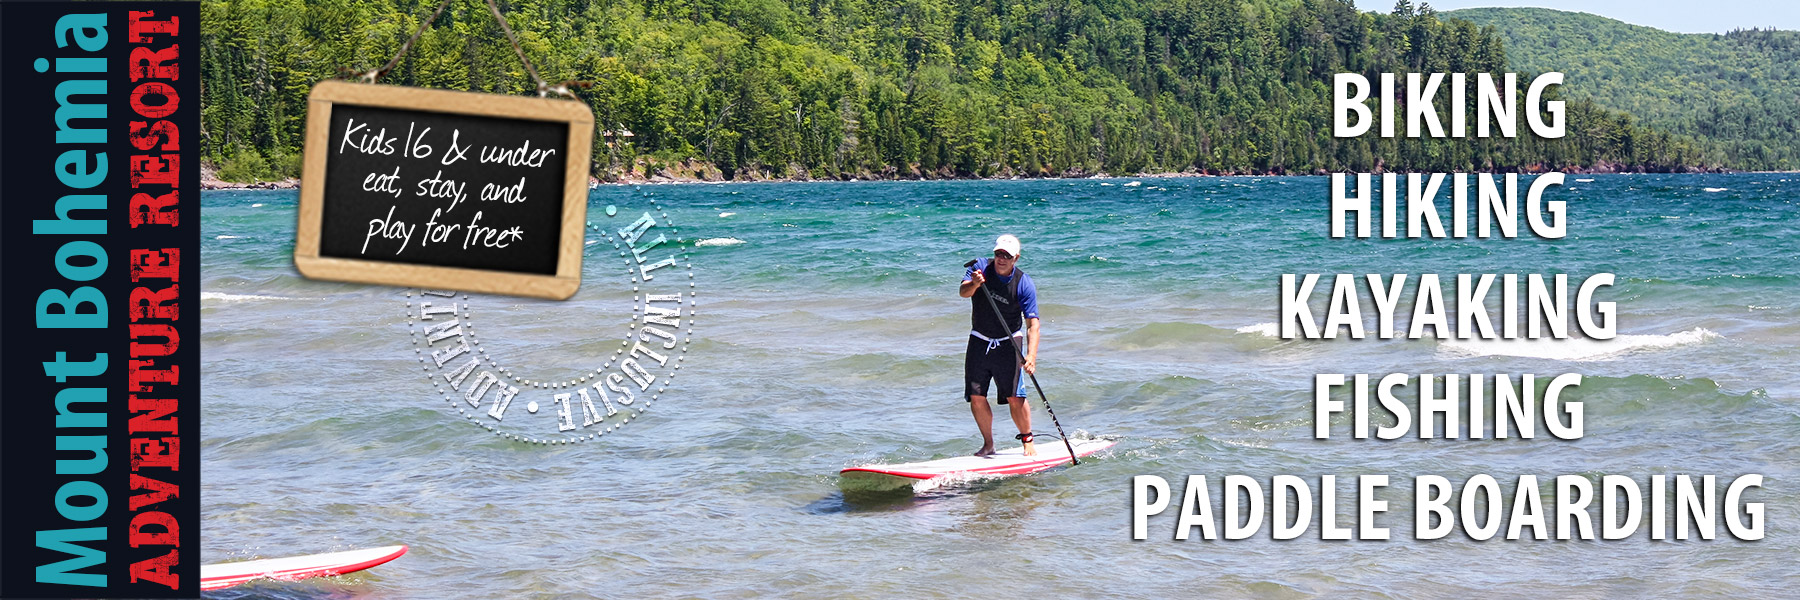 paddle boarding lake superior